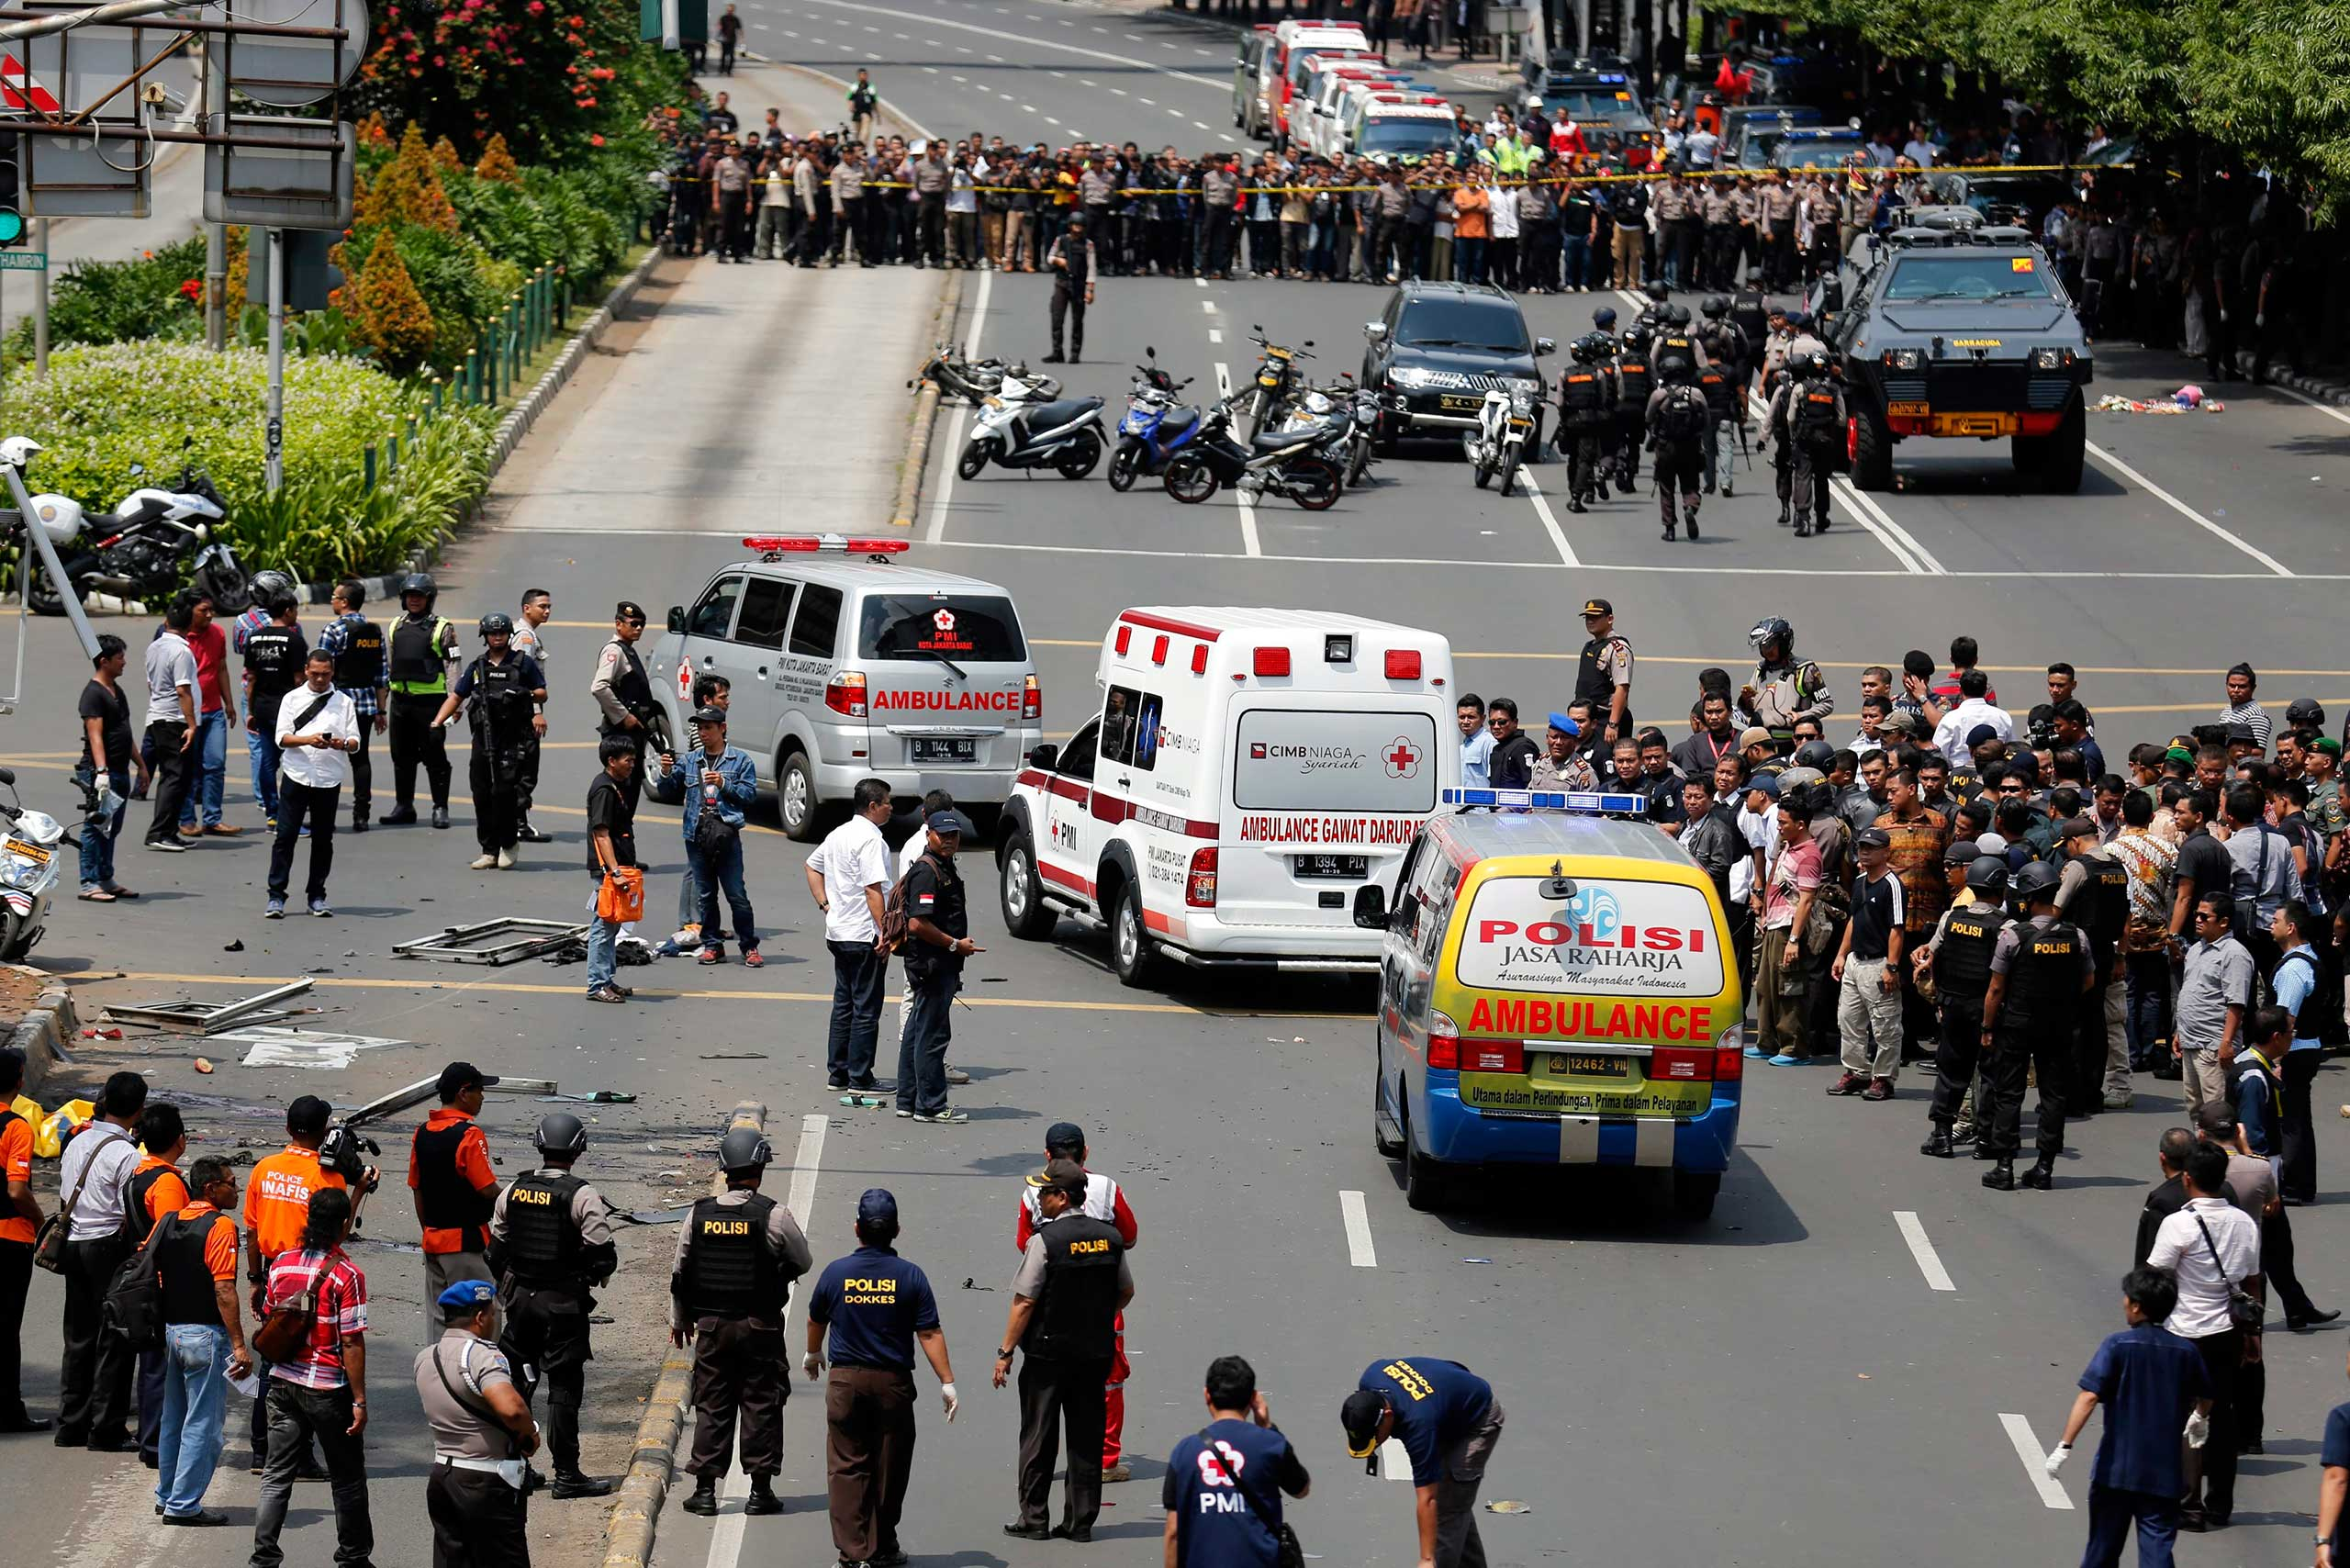 Police ambulances pass the crowds carrying victims to the hospital after a bomb blast in front of a shopping mall in Jakarta, Indonesia, Jan. 14, 2016.